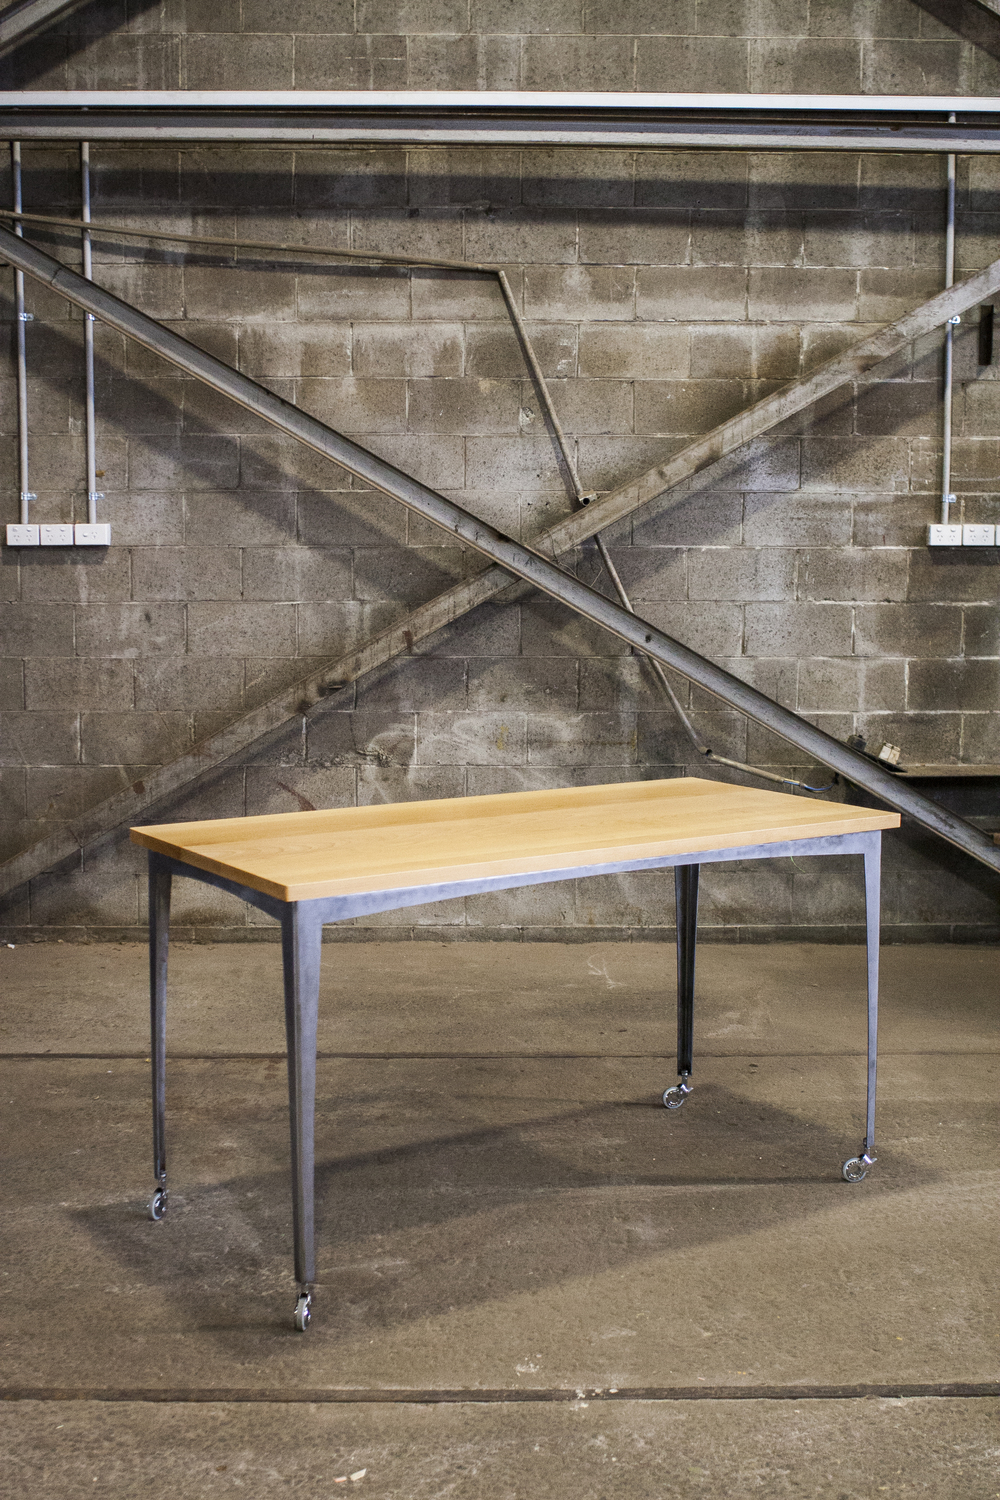 Kitchen bench 2015 - weld+fathom